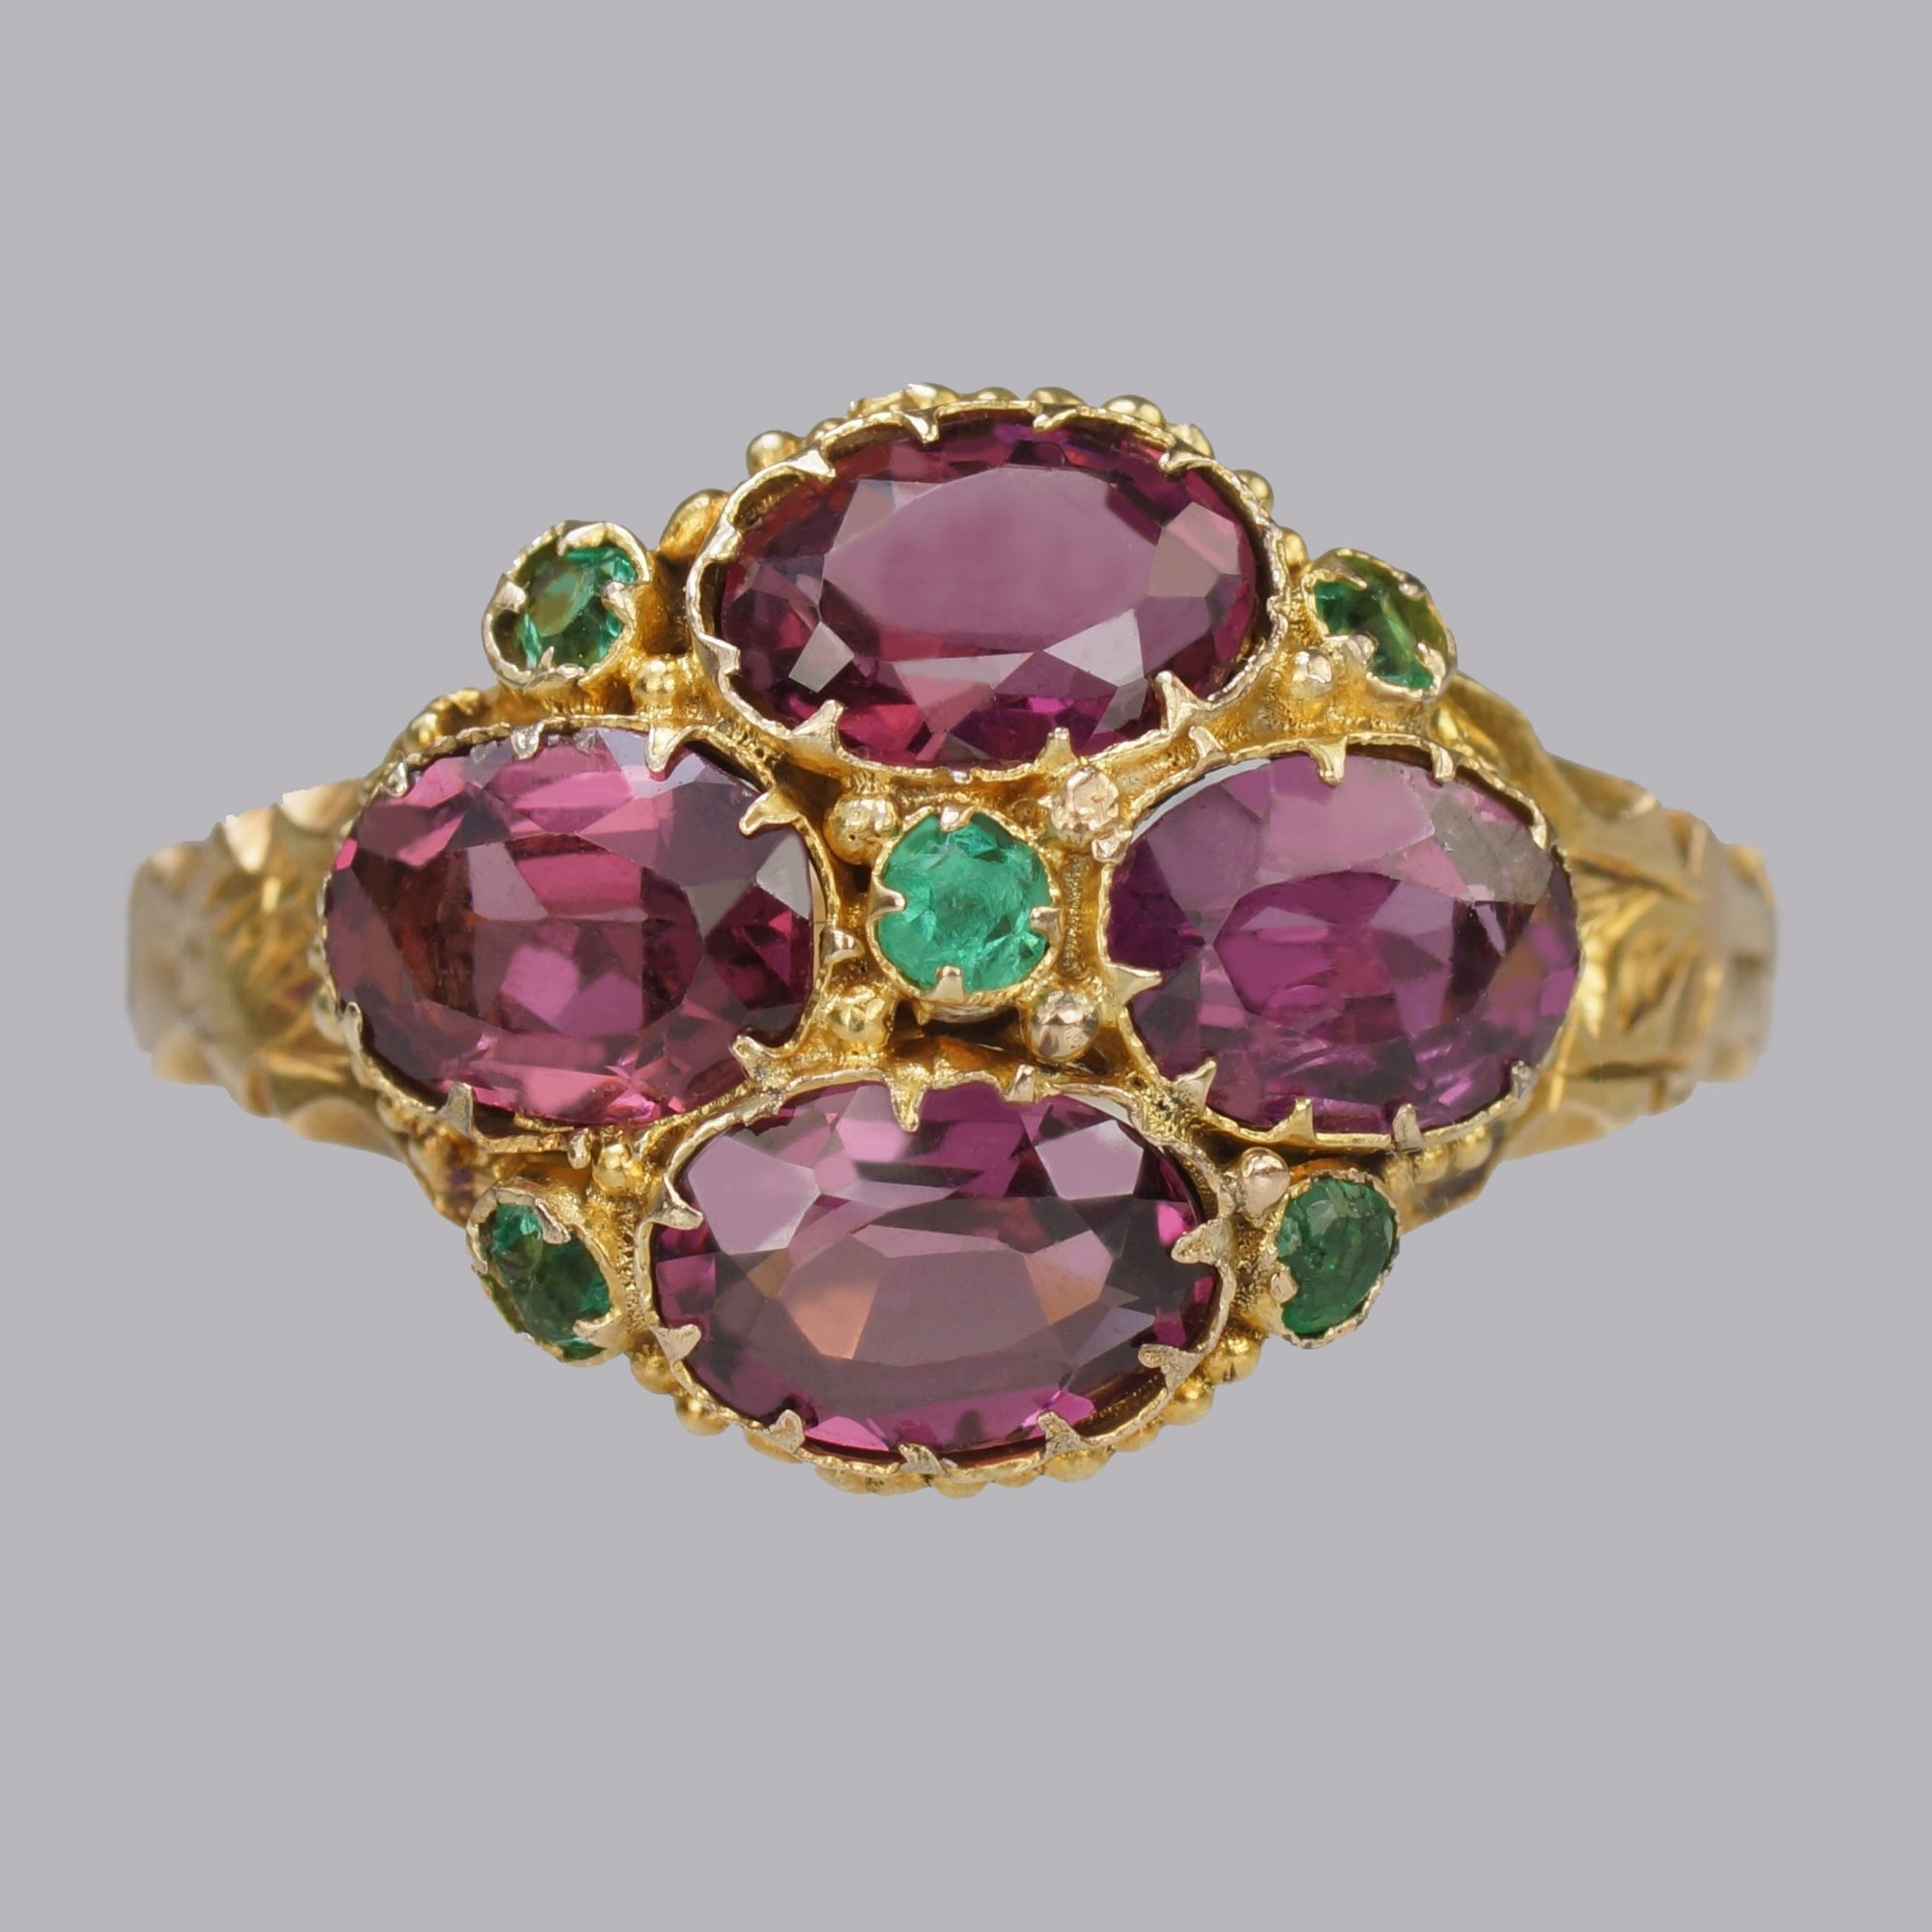 What are the attractions of antique and vintage jewellery?